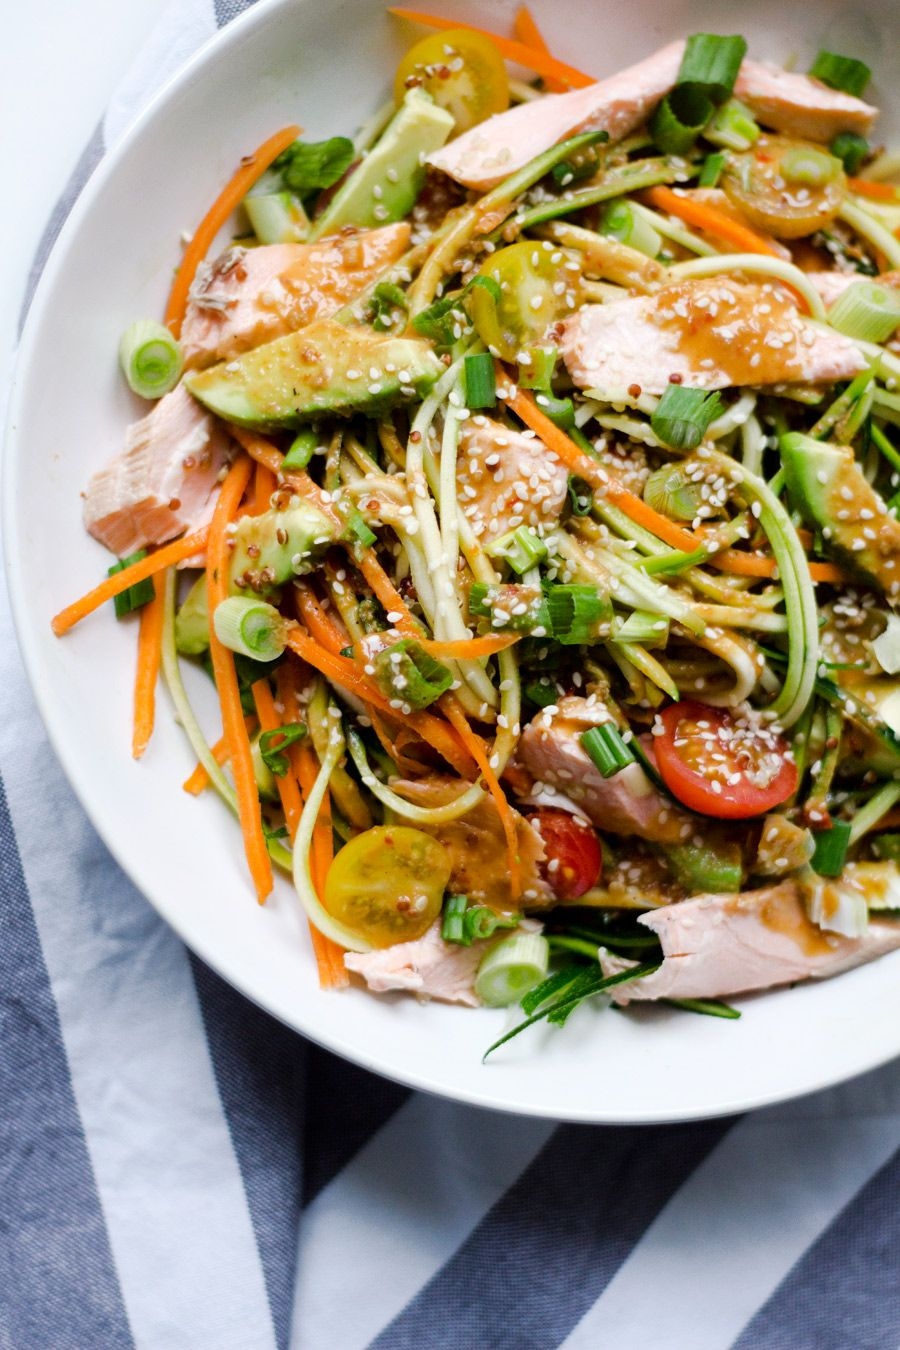 Let me kick off this recipe by saying life doesn't start until you have a julienne vegetable...